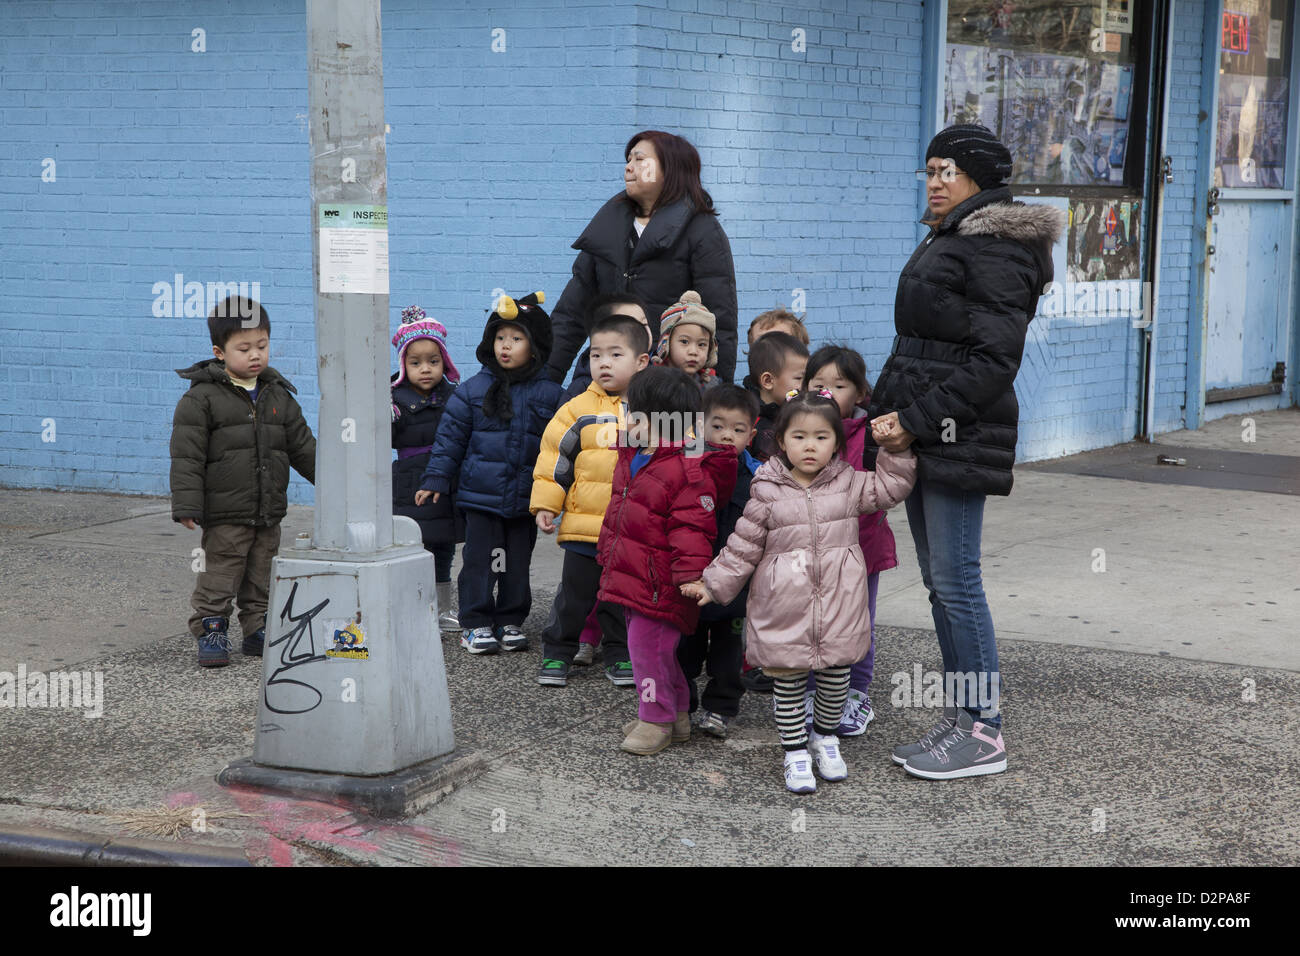 Nursery school/ day care on the Lower East Side of Manhattan. Walking in the neighborhood. - Stock Image